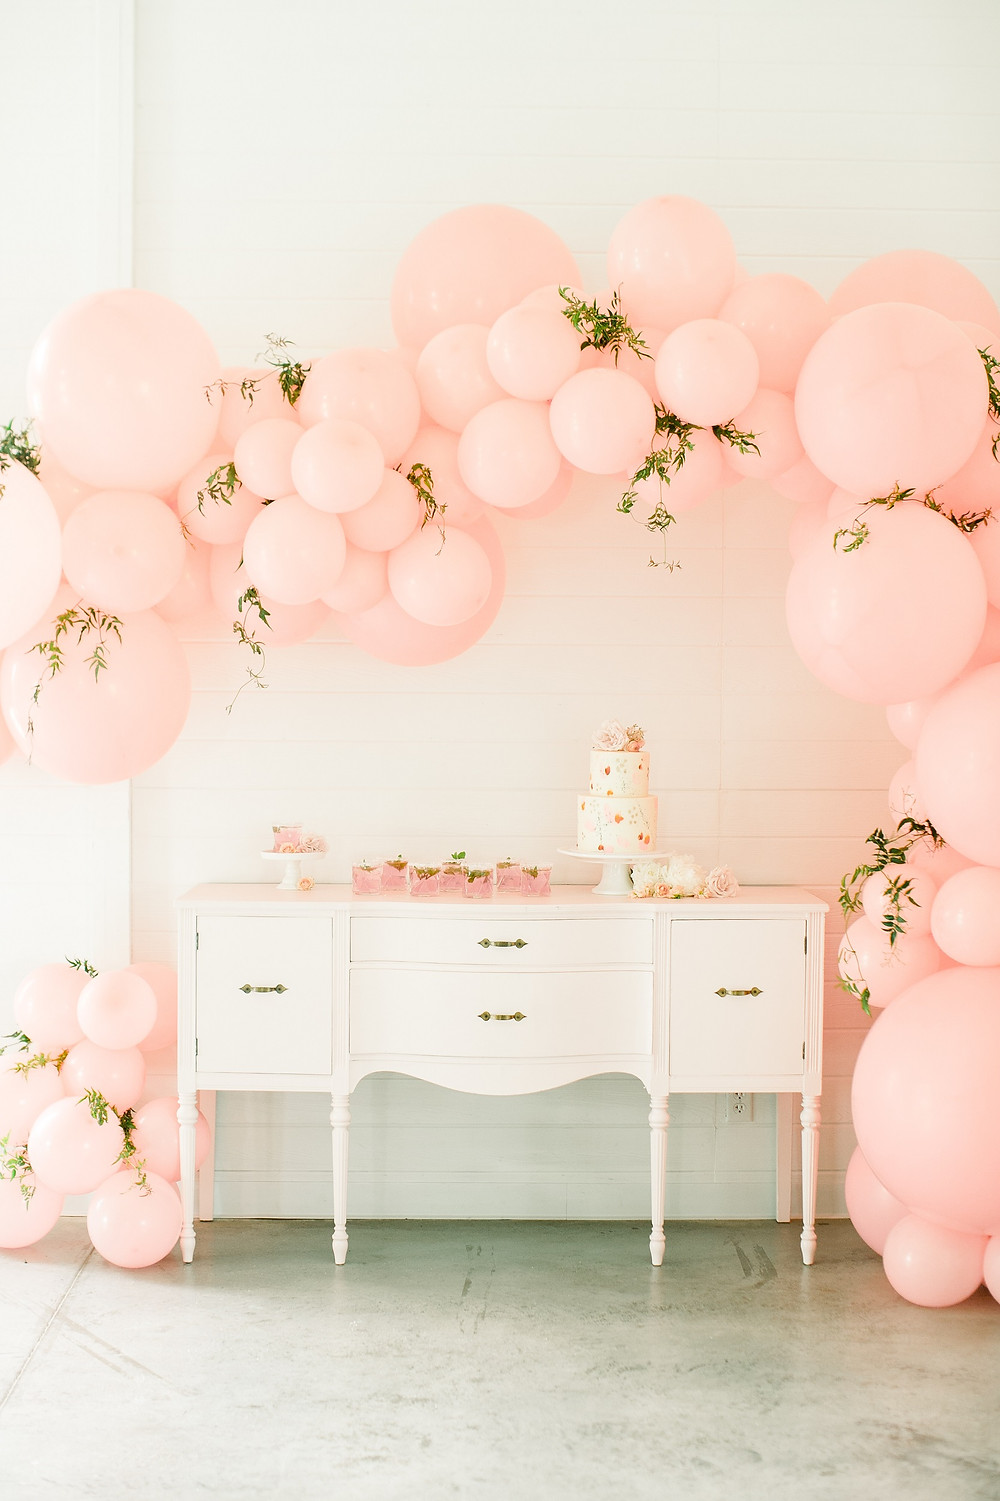 Pink balloon arch with greenery over wedding cake table display on pink vintage buffet at ashton hill farm in cedar rapids